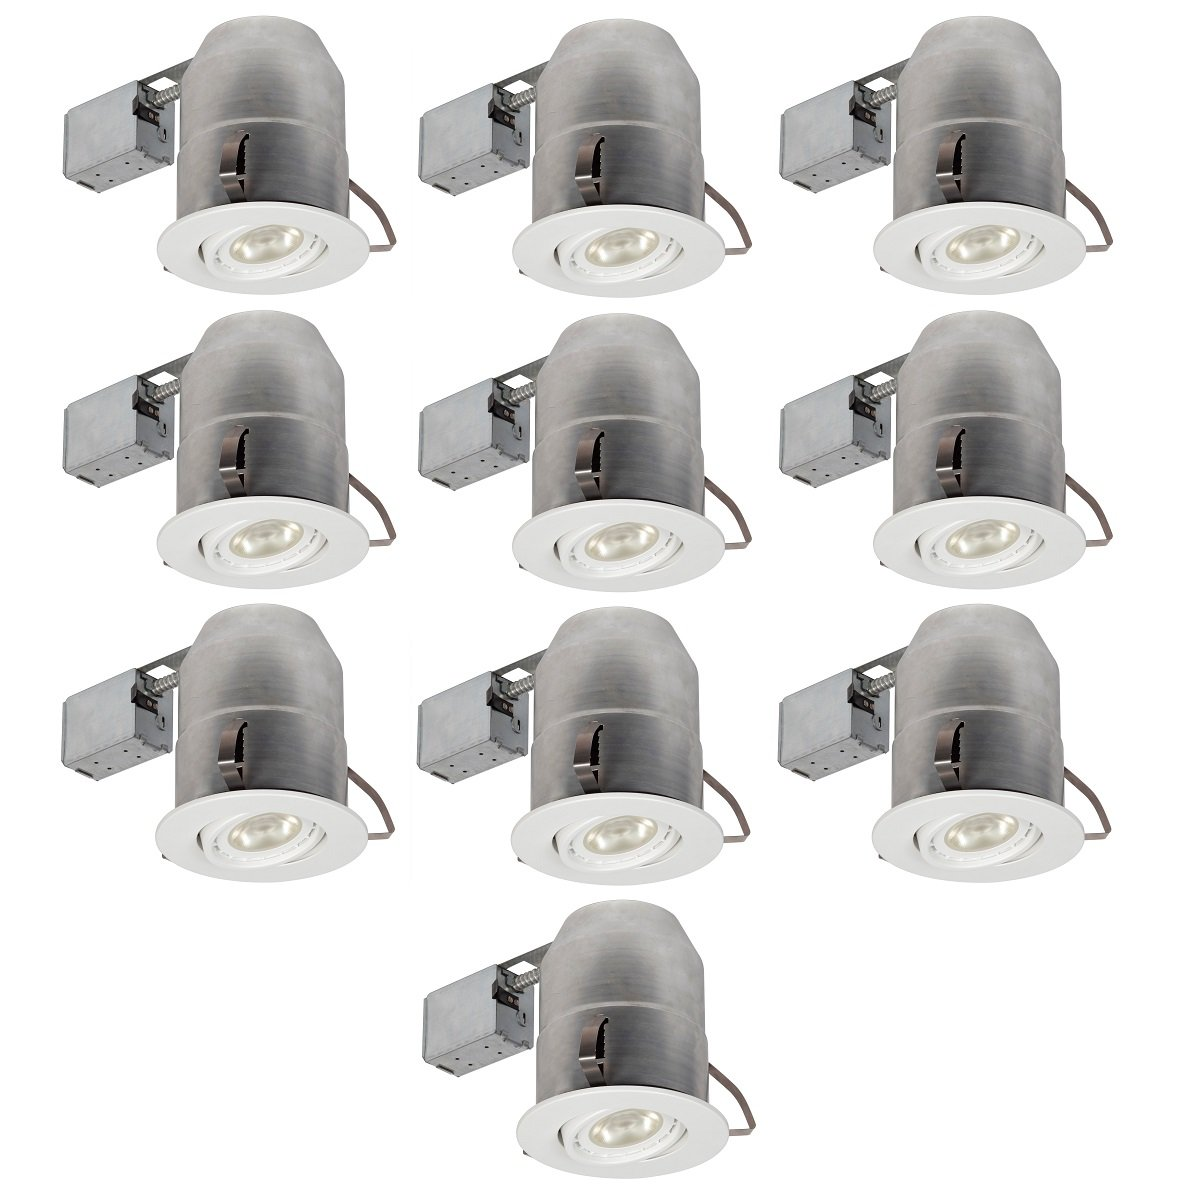 Globe Electric 6'' Swivel Spotlight Round Recessed Lighting Kit Dimmable Downlight, Contractor's 10-Pack, White Finish, 9100901 by Globe Electric (Image #1)